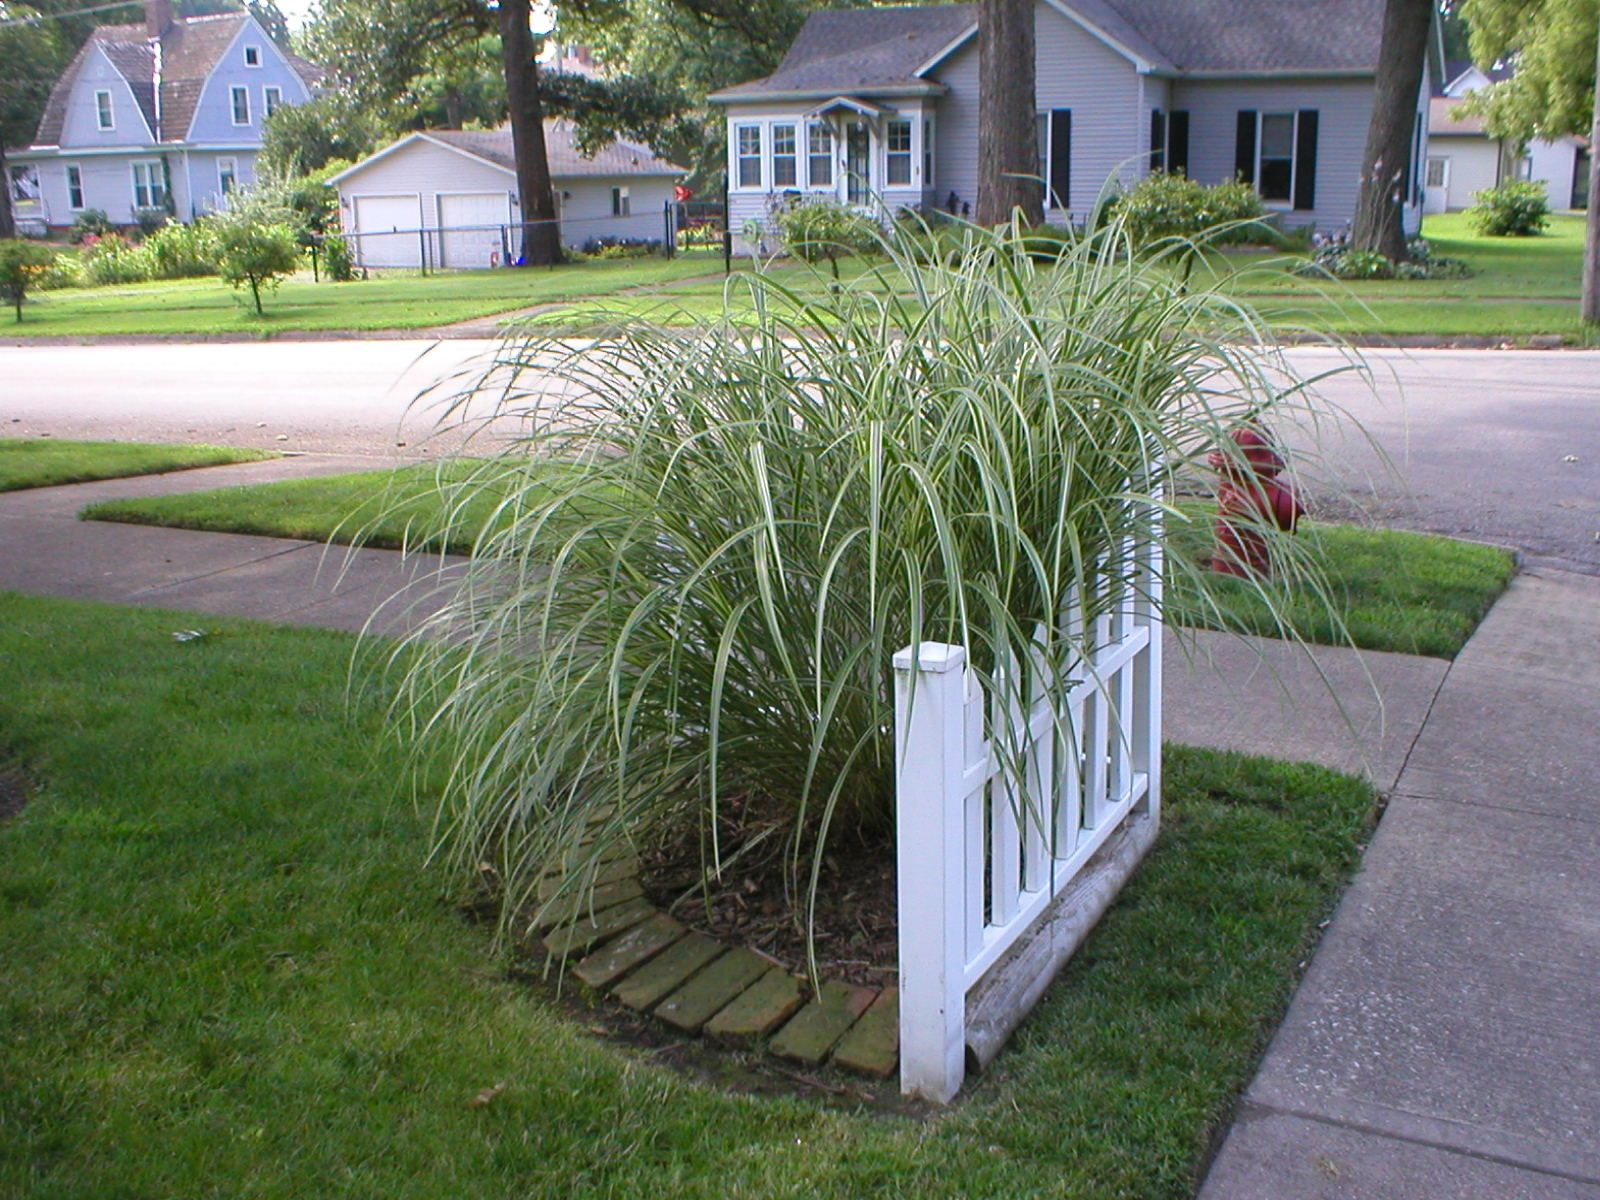 Front yard driveway landscaping ideas  I love grasses This one is just the right size for the corner of